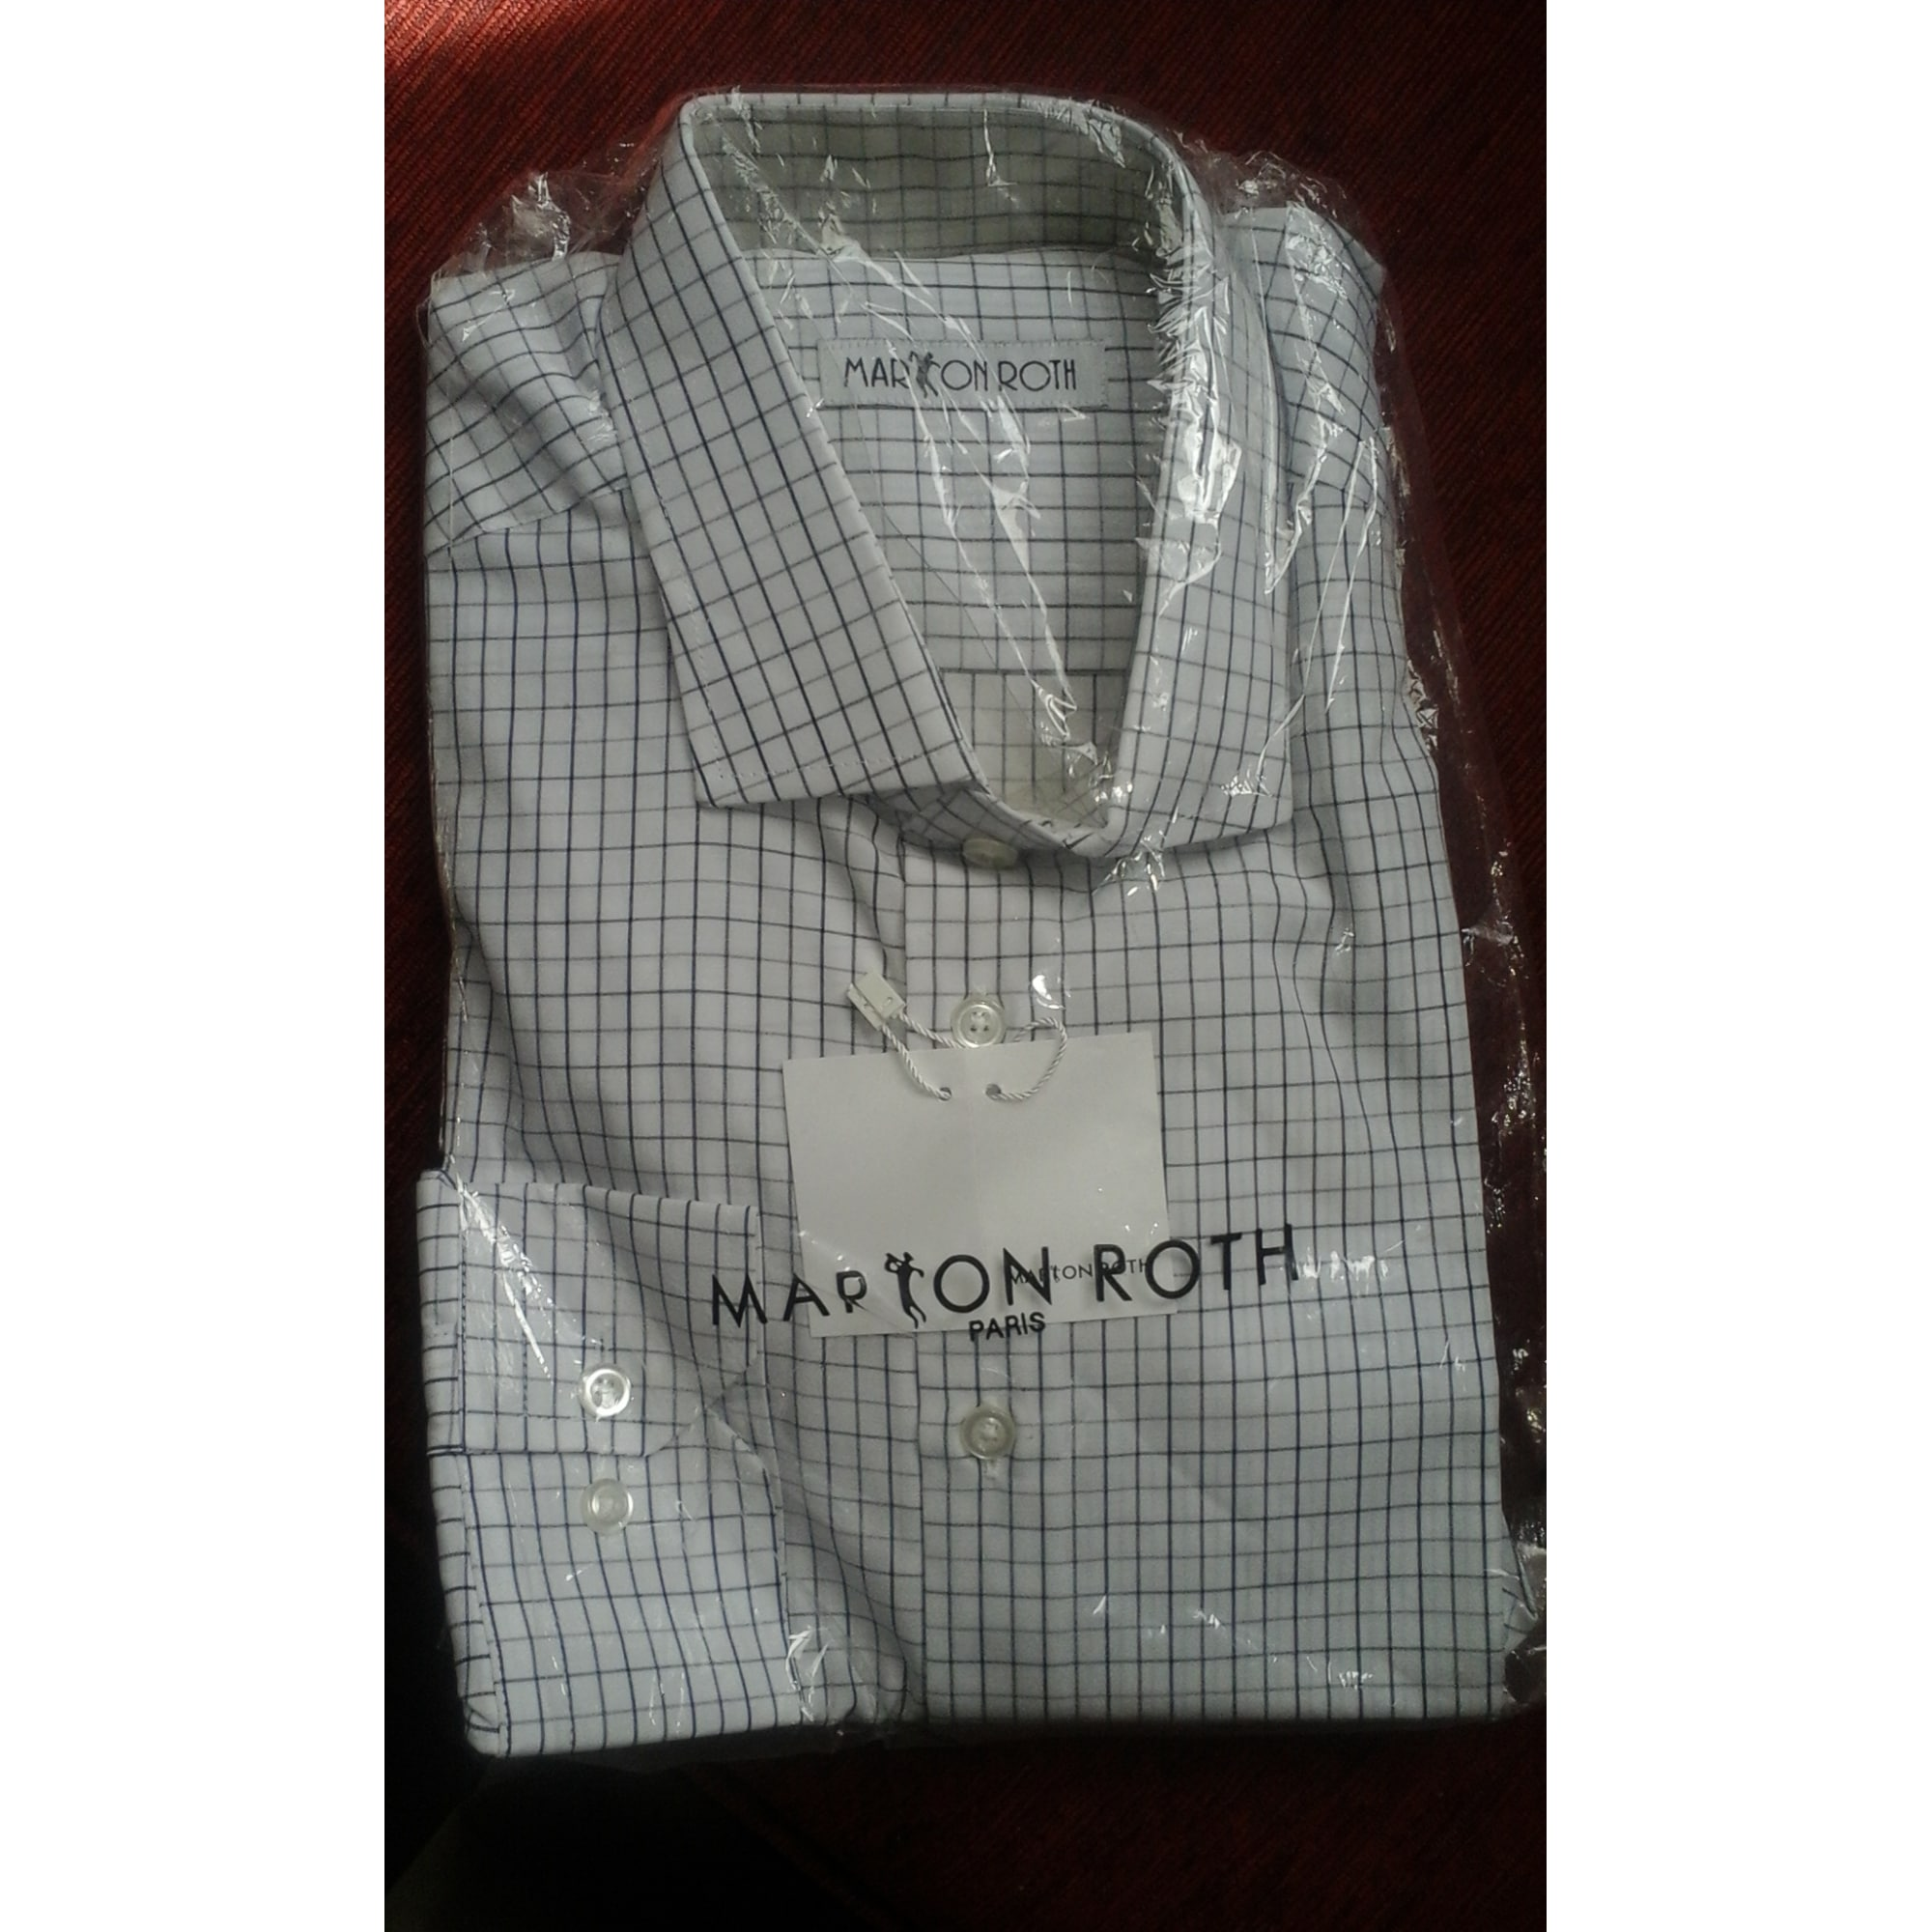 roth manteau marion homme roth homme roth manteau marion homme marion manteau marion roth manteau rxCBoed